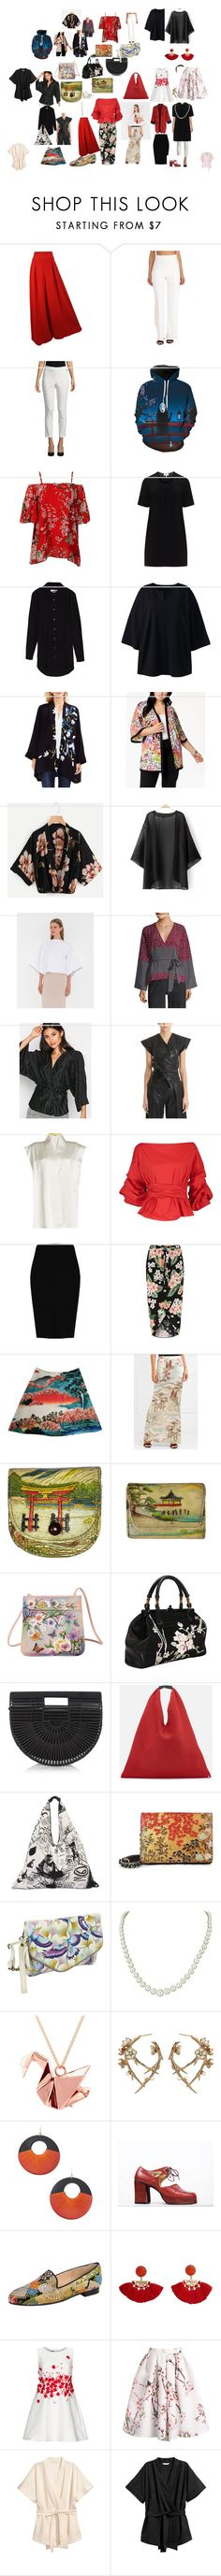 """Japan1"" by nadine-gubanowa on Polyvore featuring мода, Calvin Klein, WithChic, Chalou, Circle Park, Lands' End, Vince Camuto, Belldini, Lauren Manoogian и Robert Rodriguez"